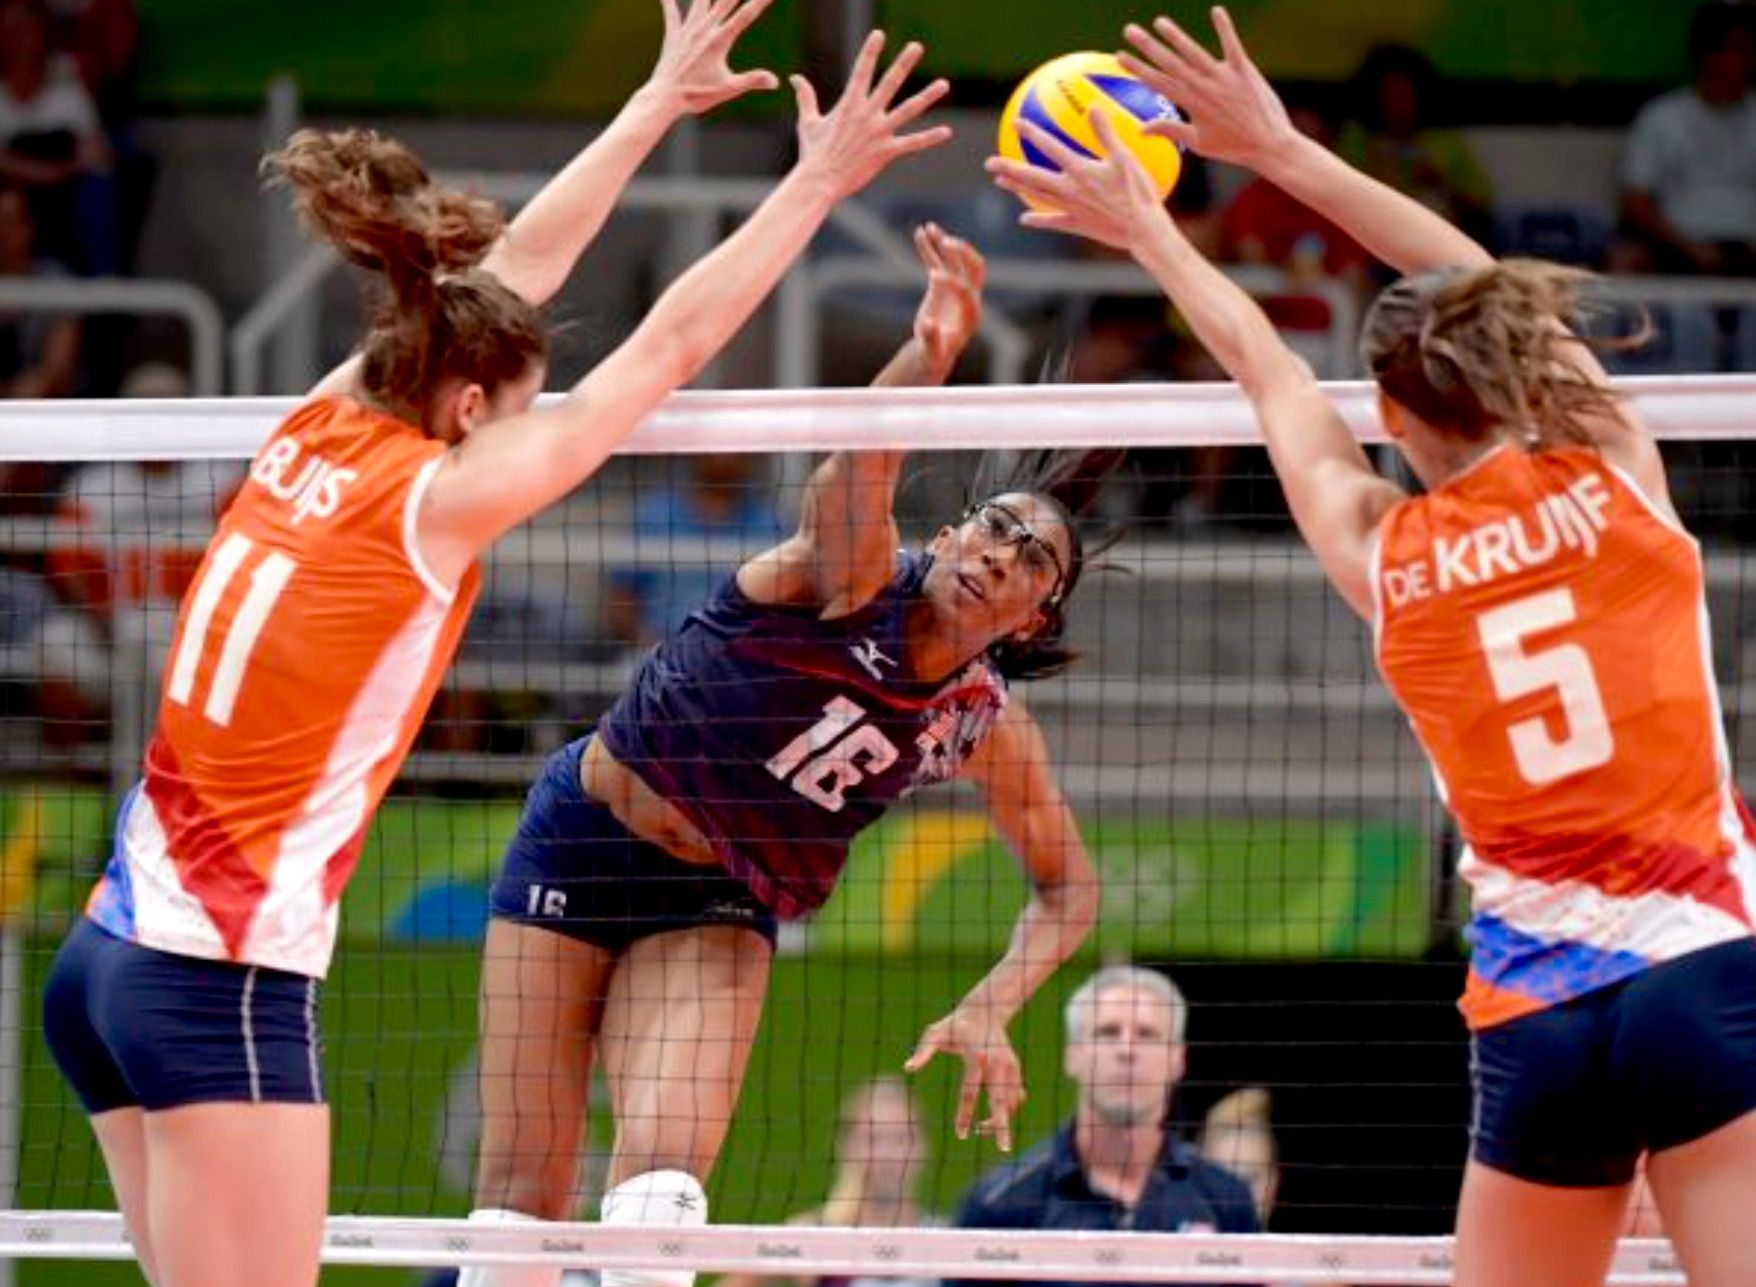 Pin By Raquel Regnier On Interesse Female Volleyball Players Summer Olympics 2016 Summer Olympic Games